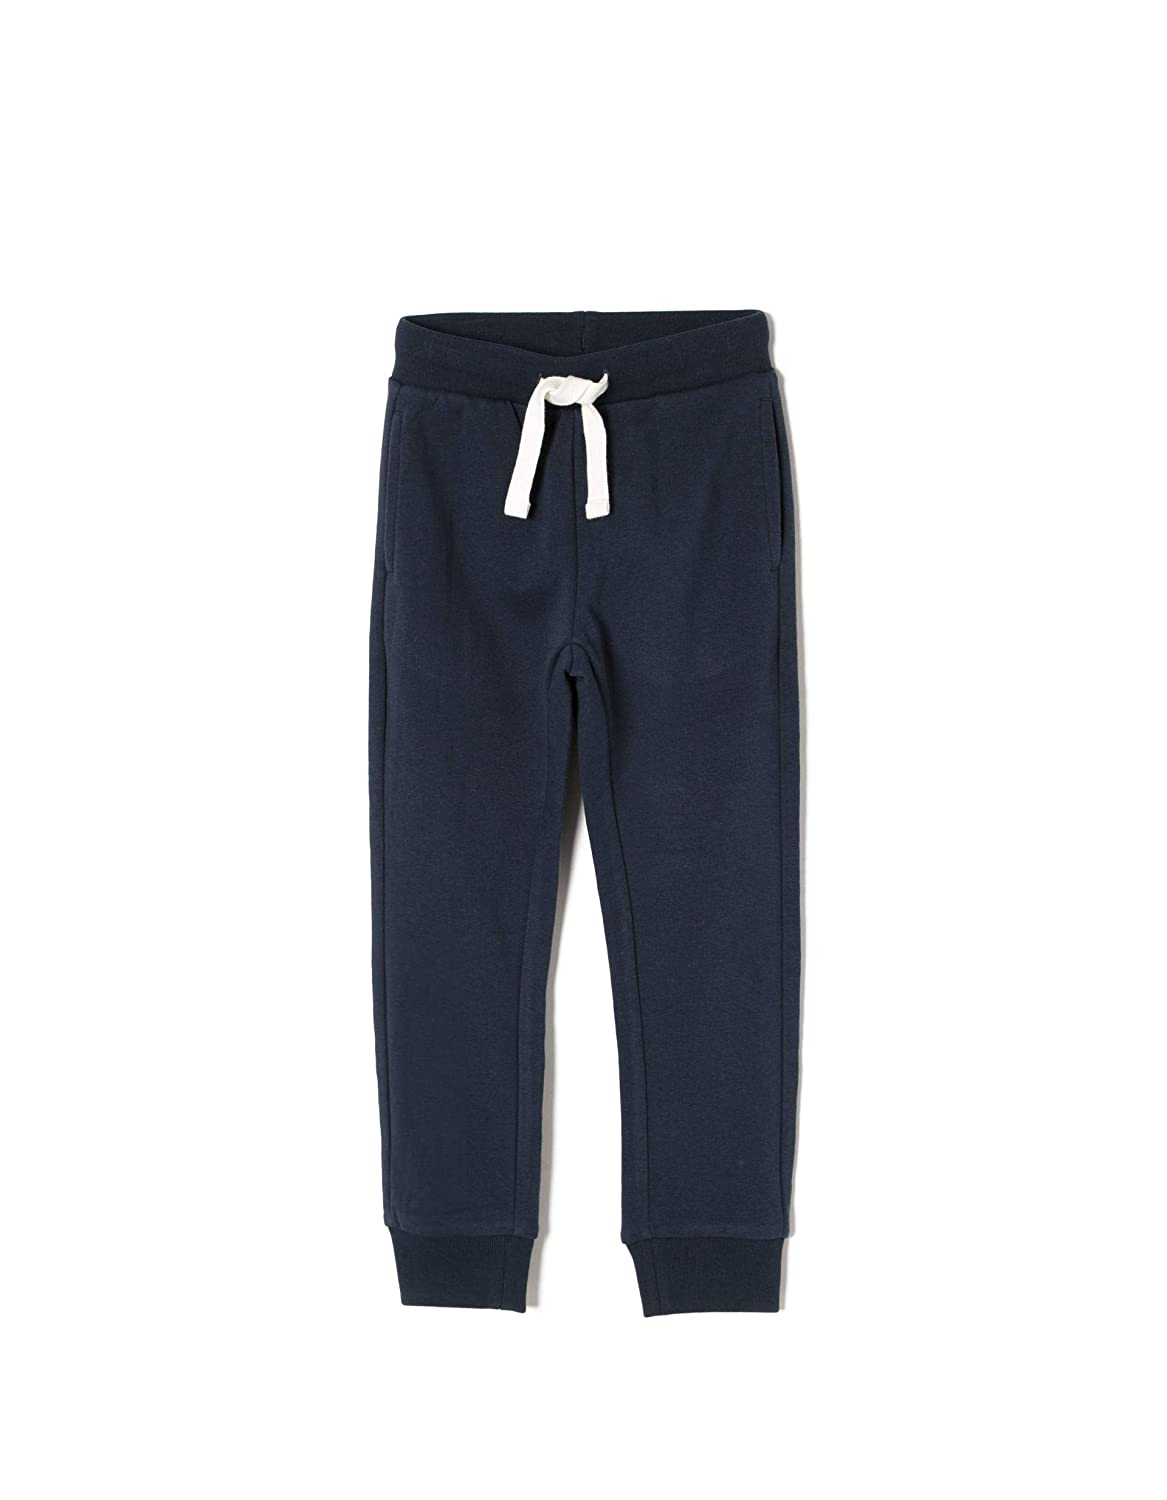 ZIPPY Boys Trouser